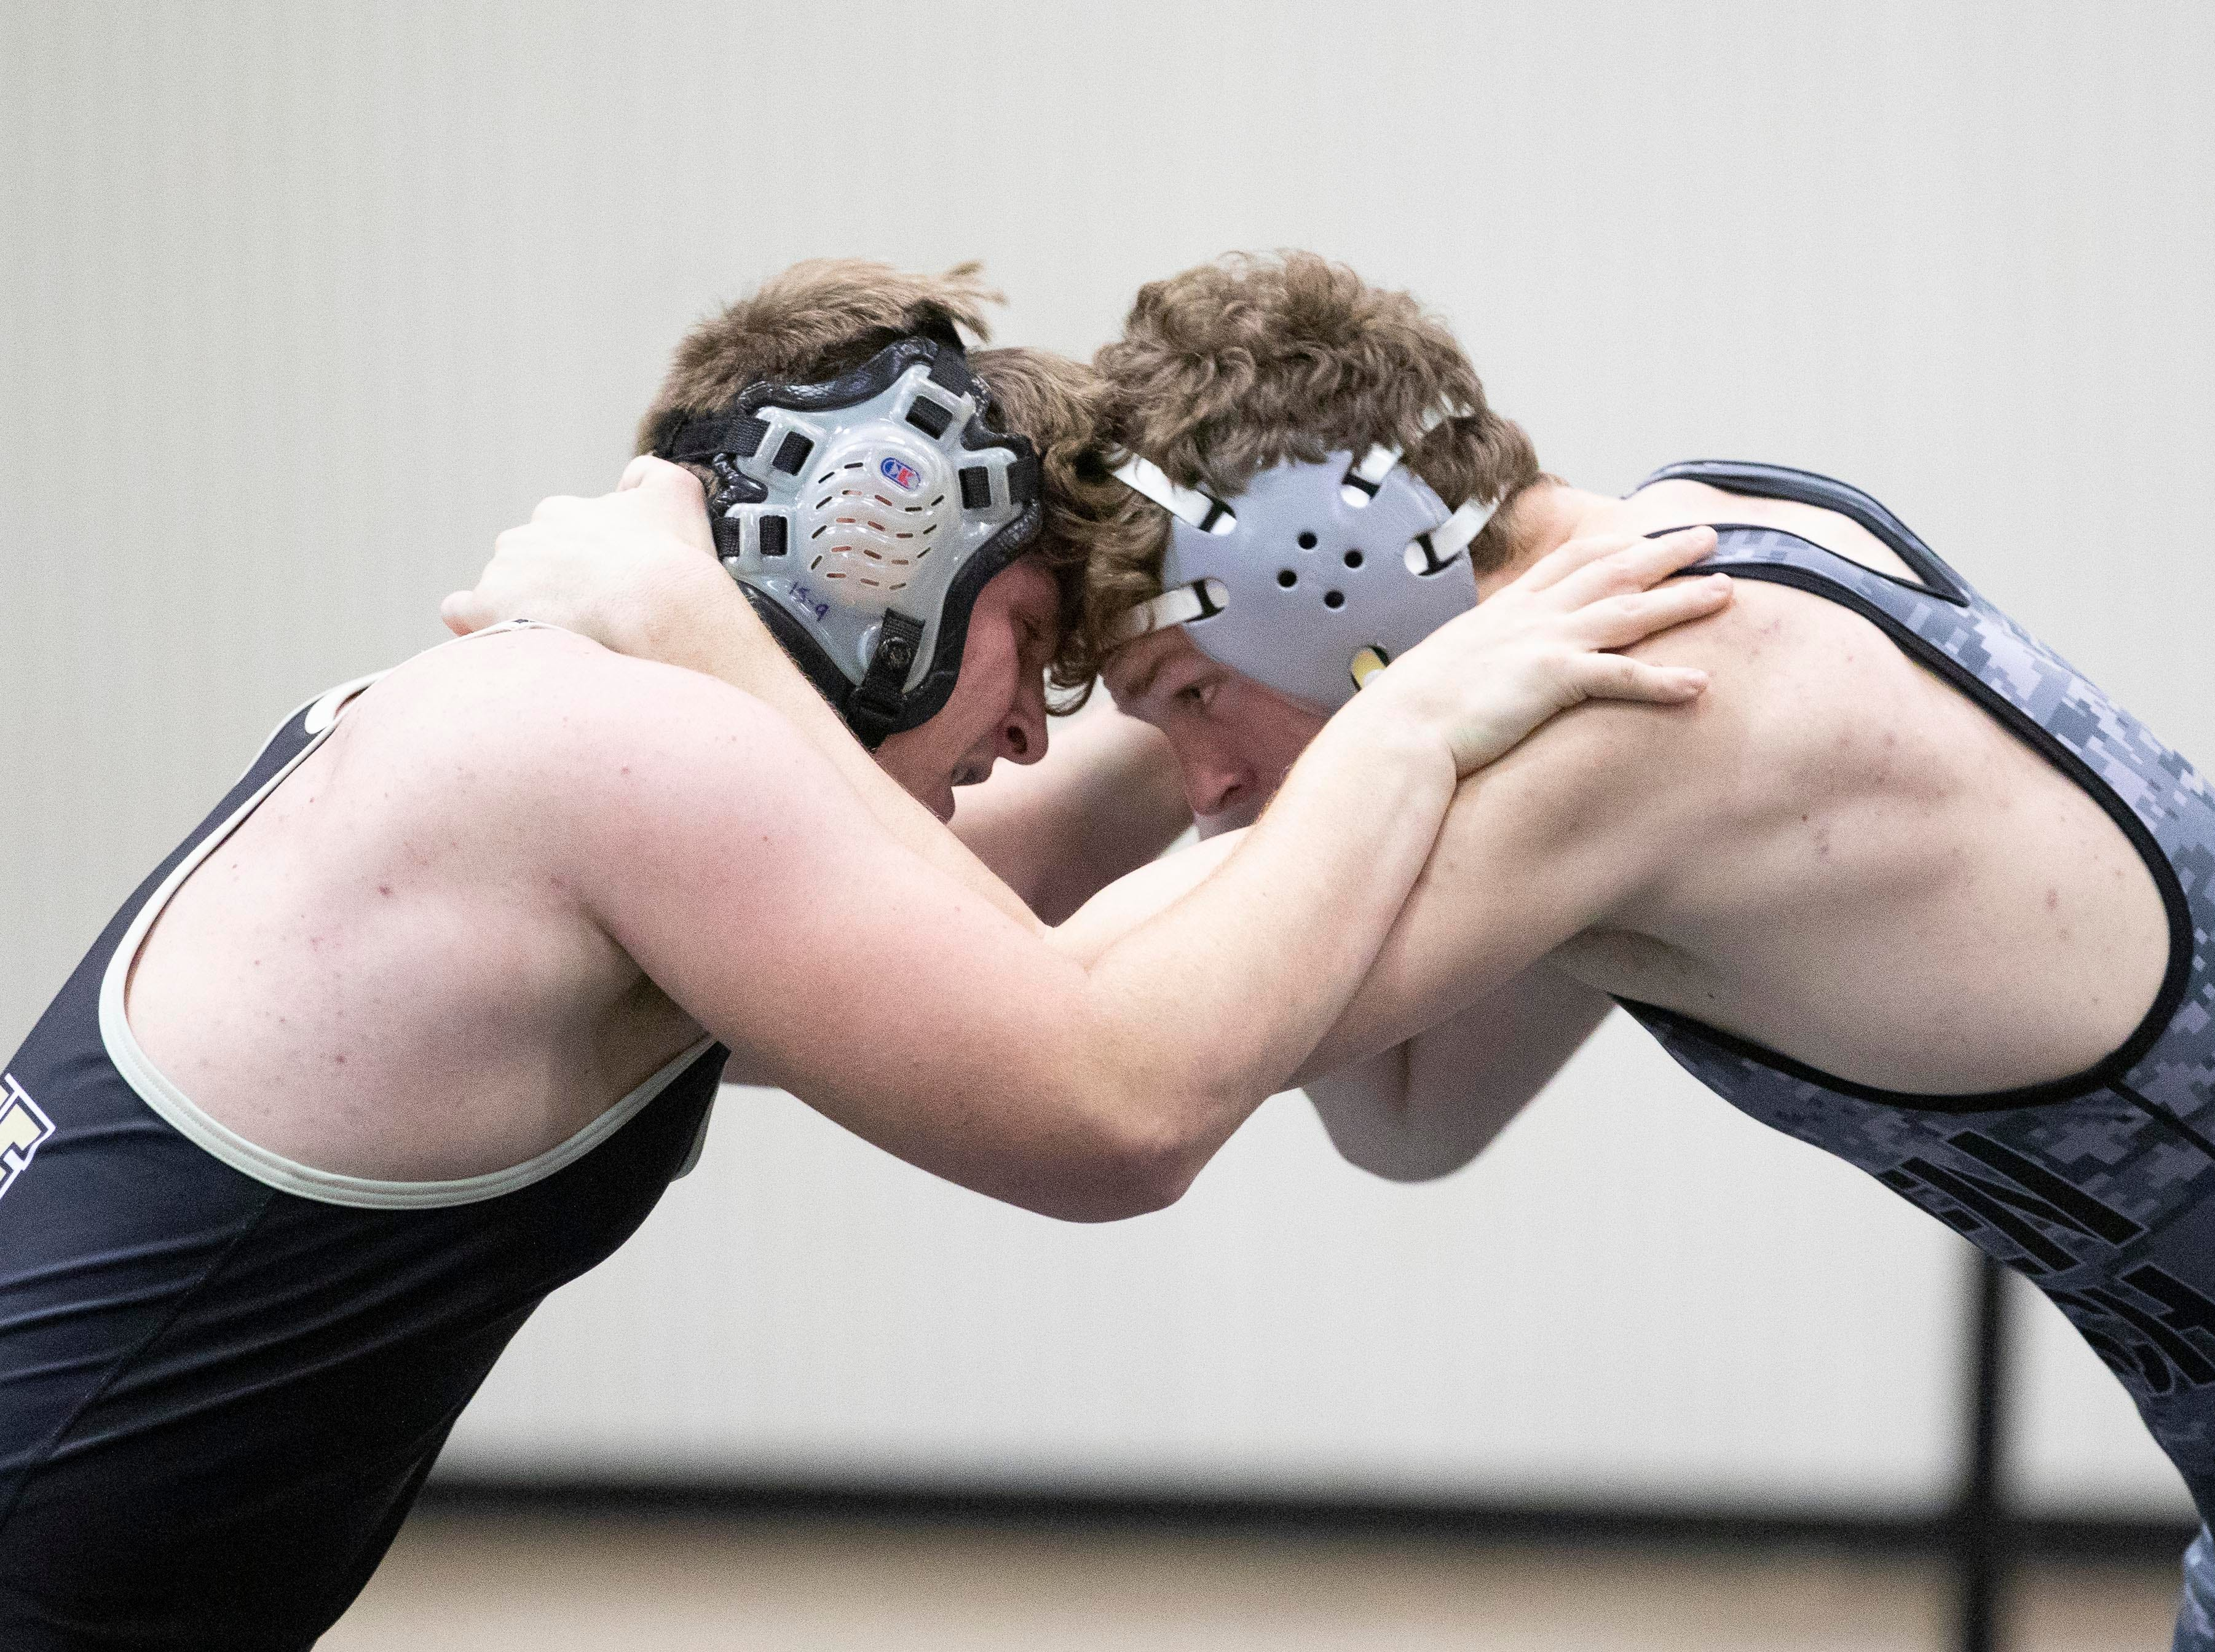 Jensen Beach High School won the District 14-2A wrestling tournament with 249.5 points on Friday, Feb. 22, 2019, in Jensen Beach. Okeechobee High School finished second with 153.5 points.